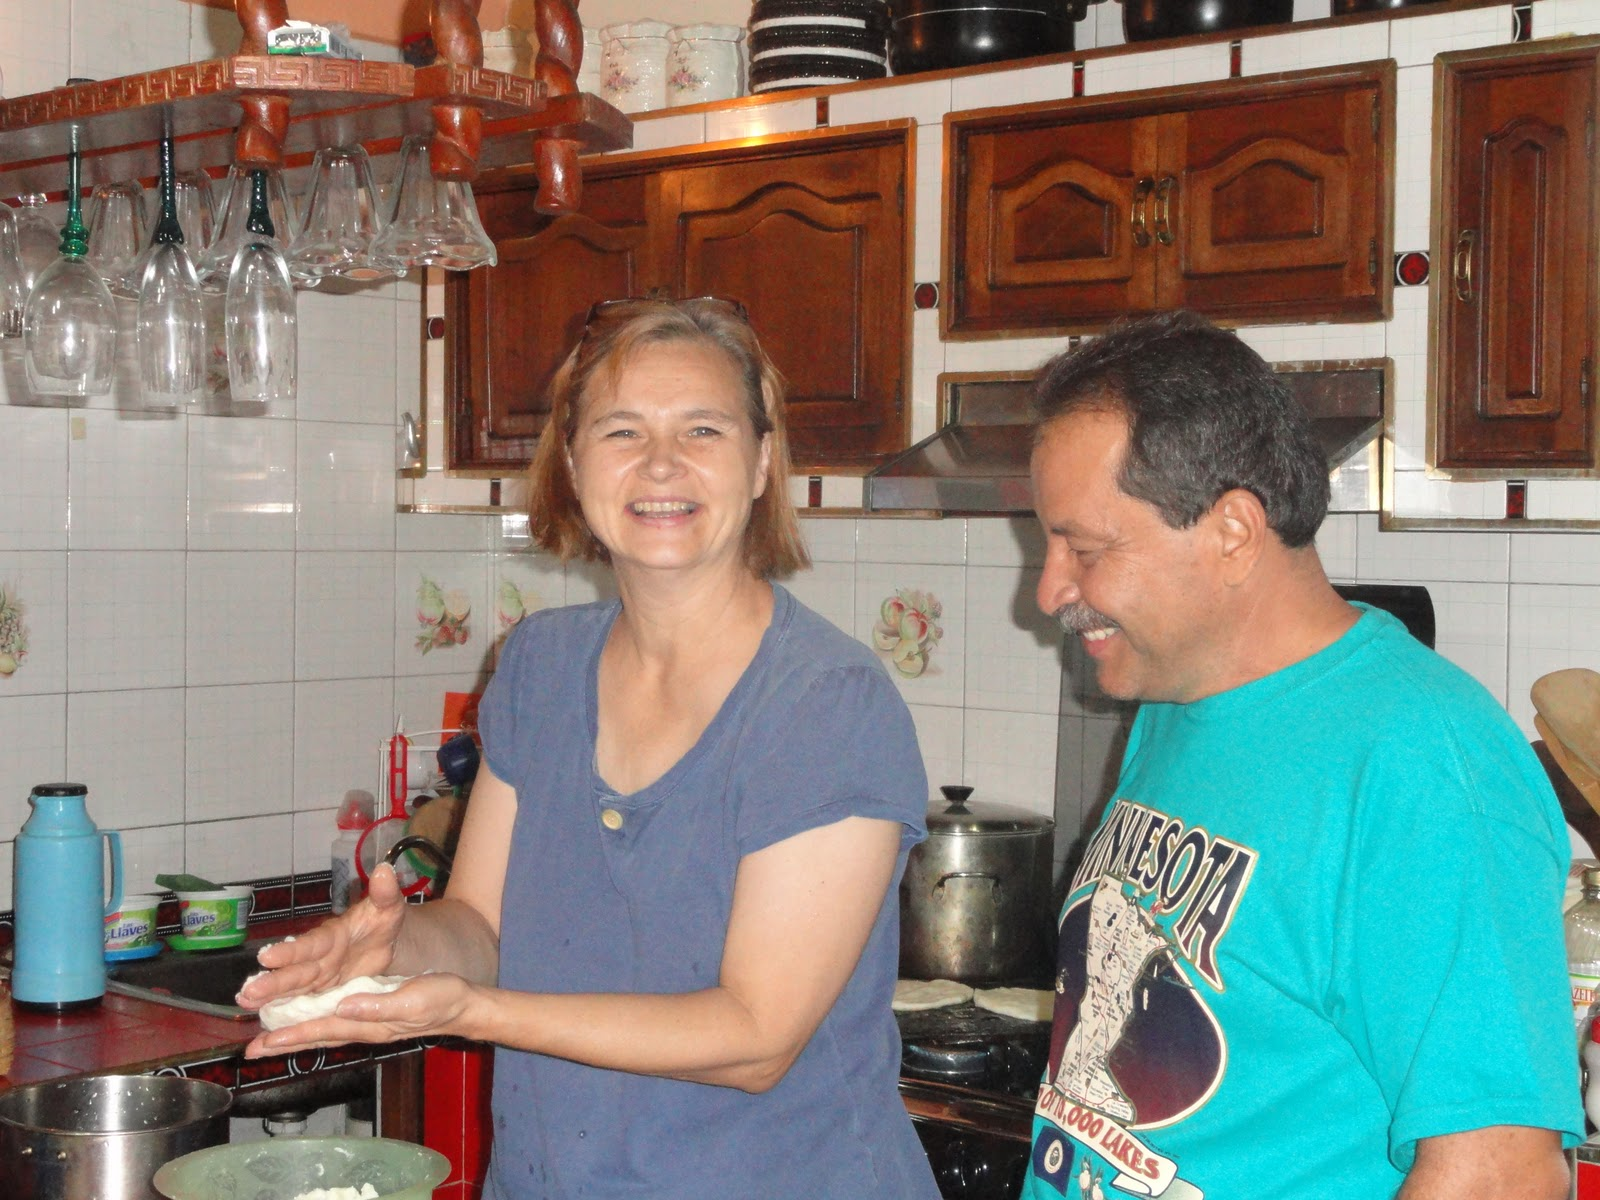 maracay mature singles Look through the profiles of member singles that have joined single doctors dating that are tagged with mature talking to other members that have similar interests.